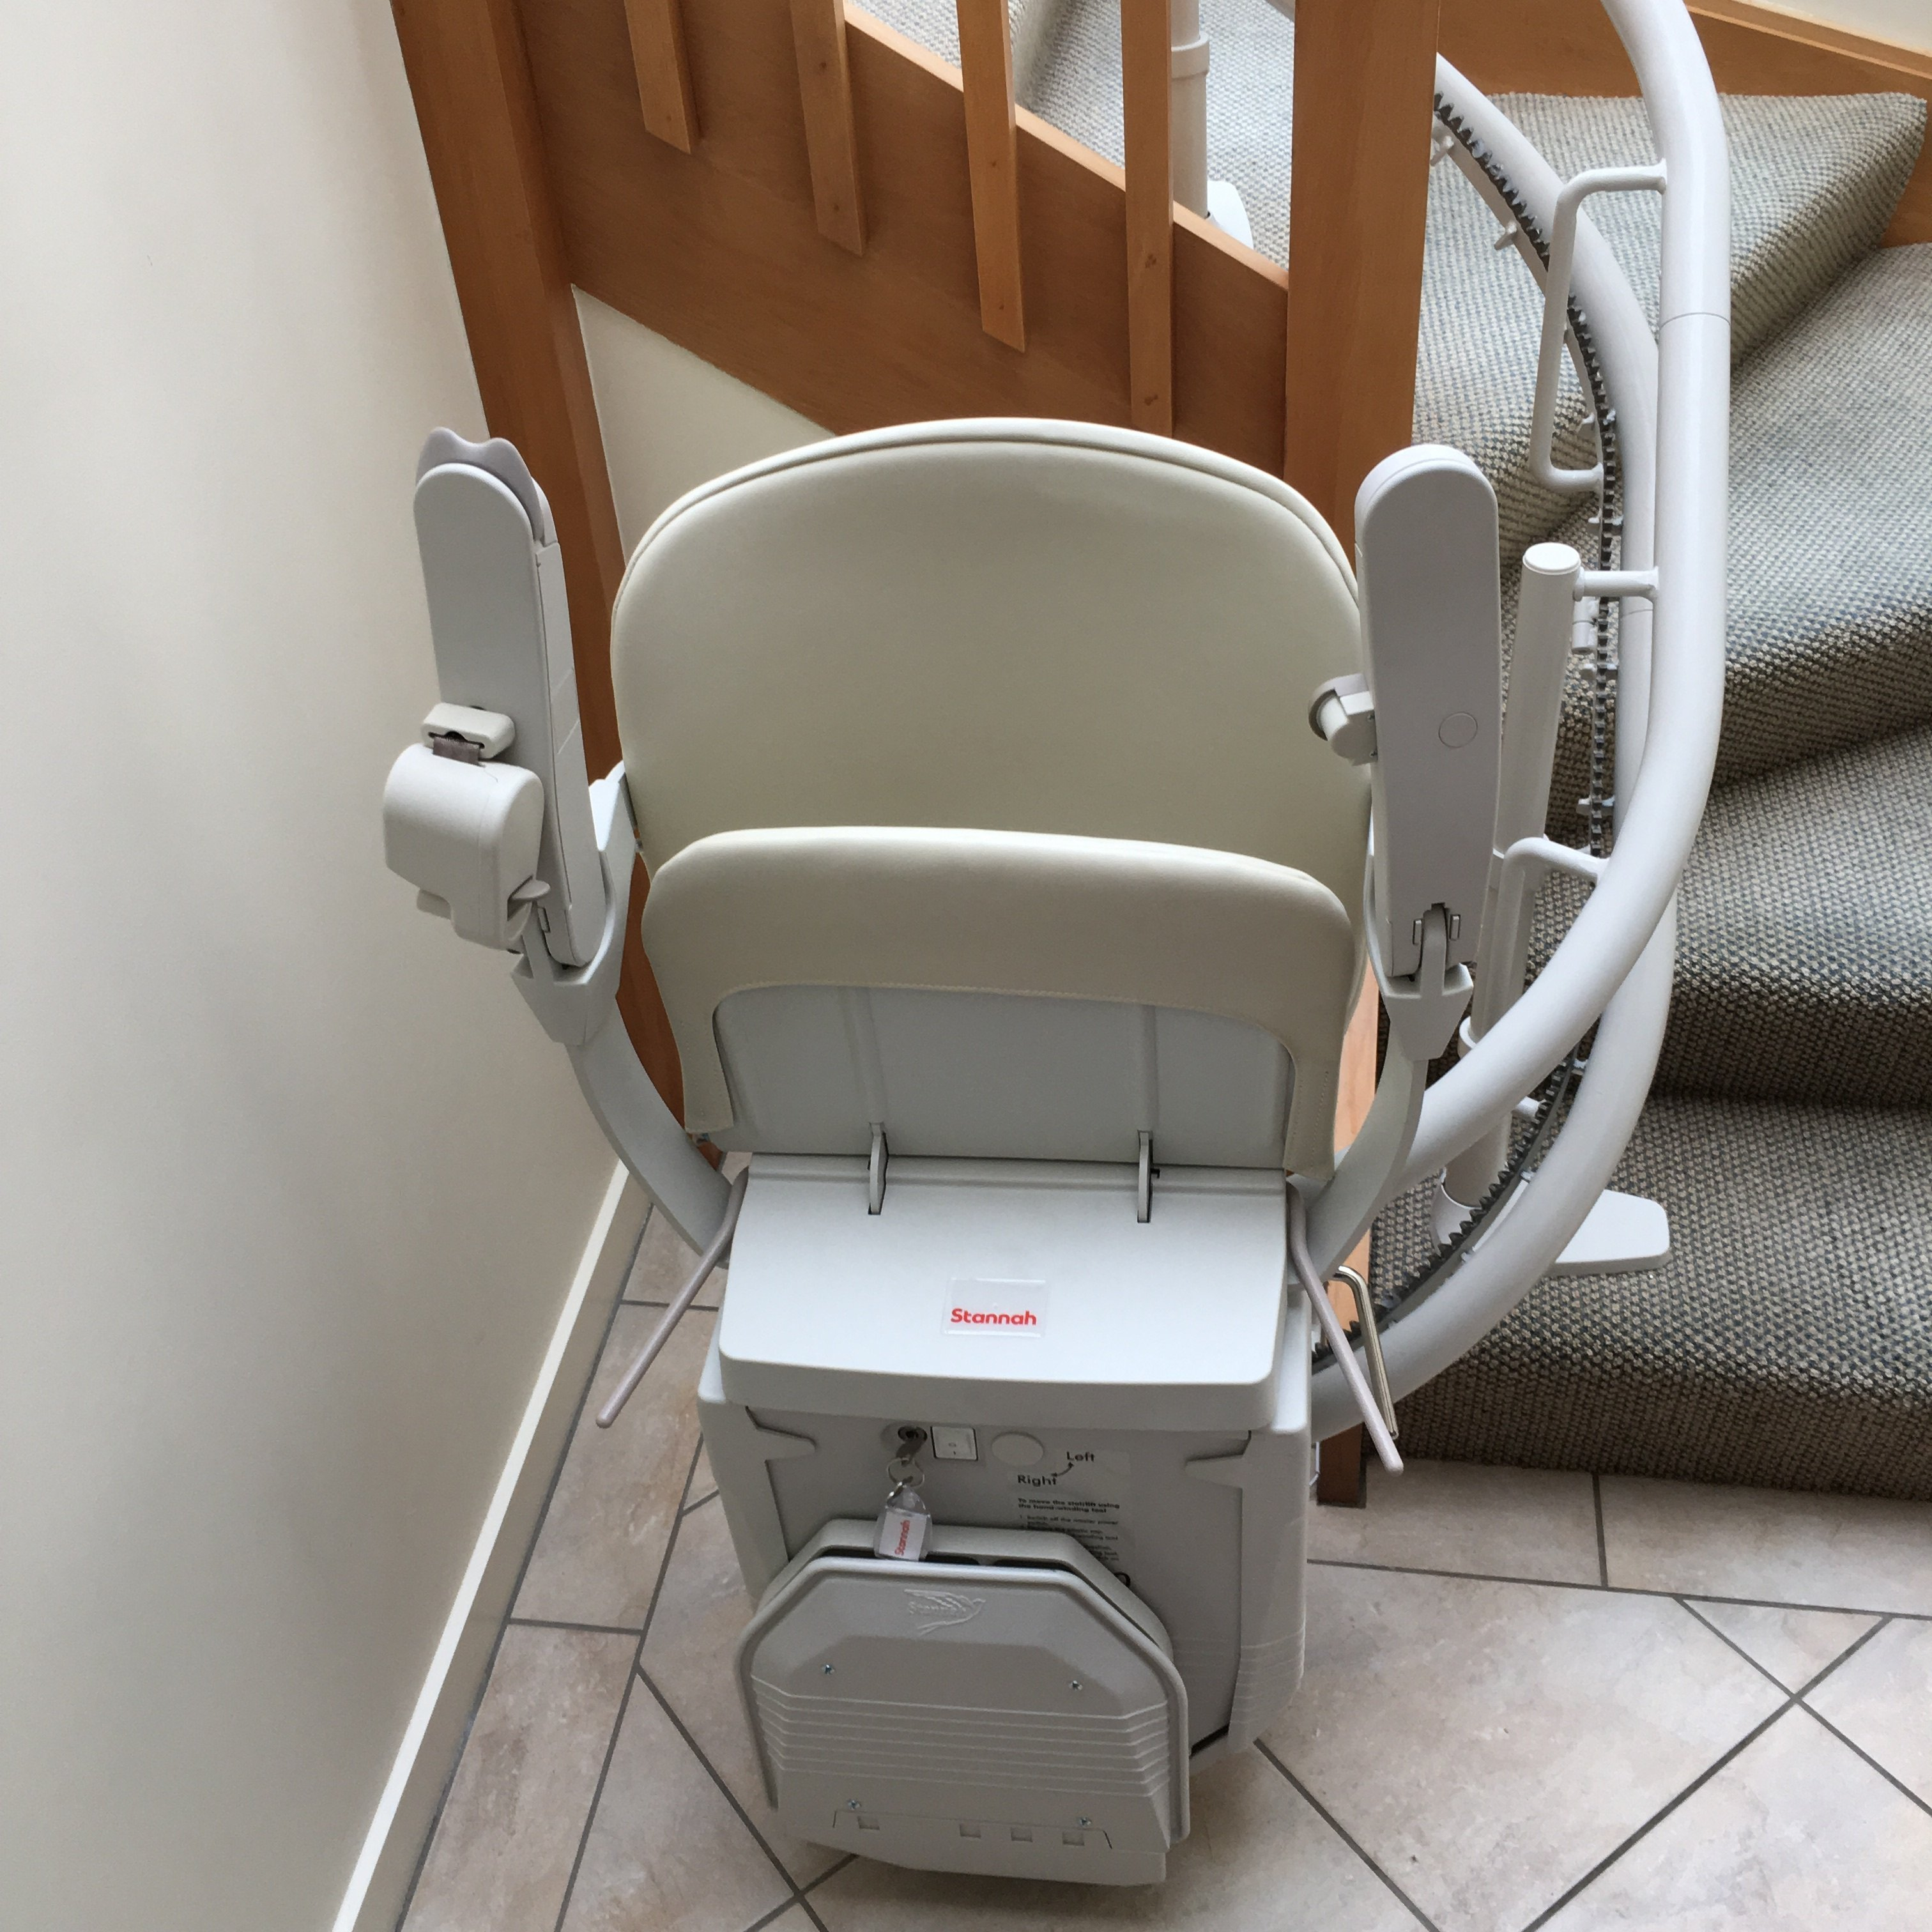 Stairs with stairlift